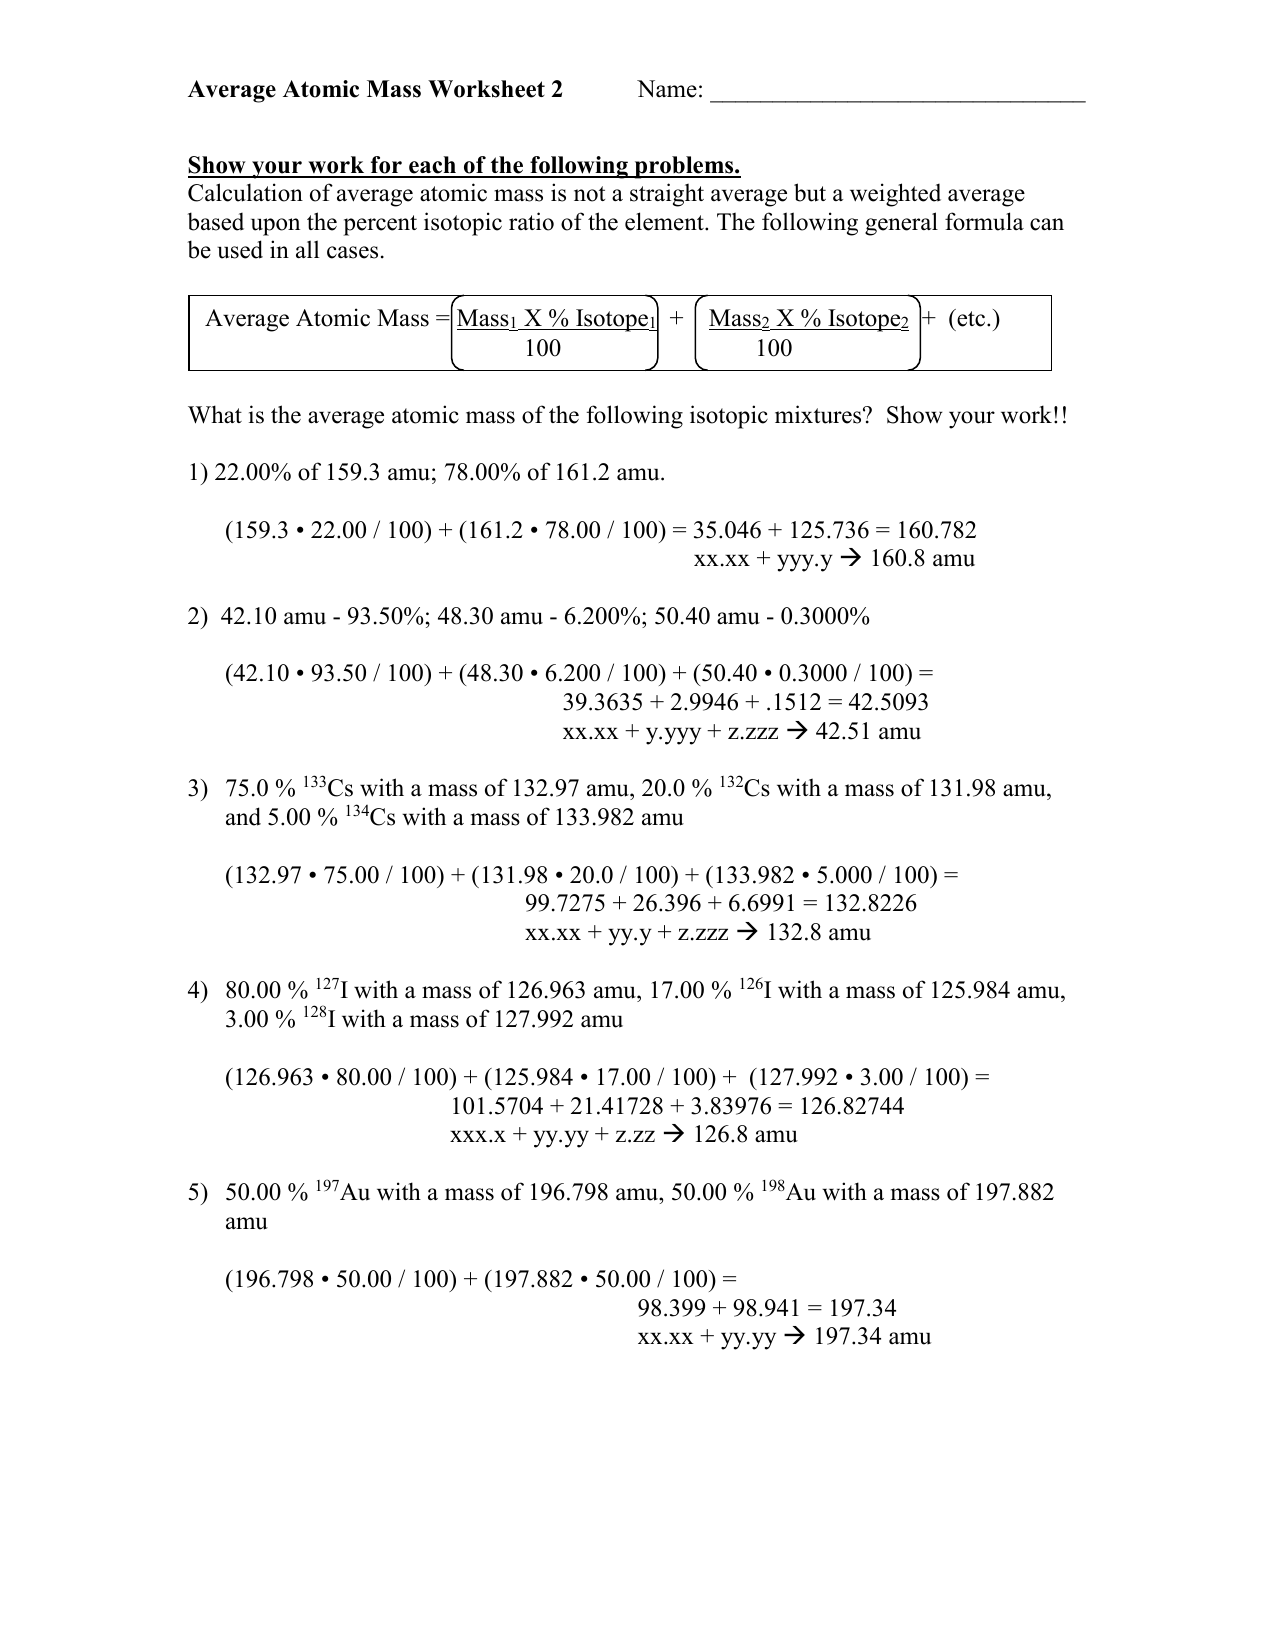 02-06 Average Atomic Mass Worksheet 2